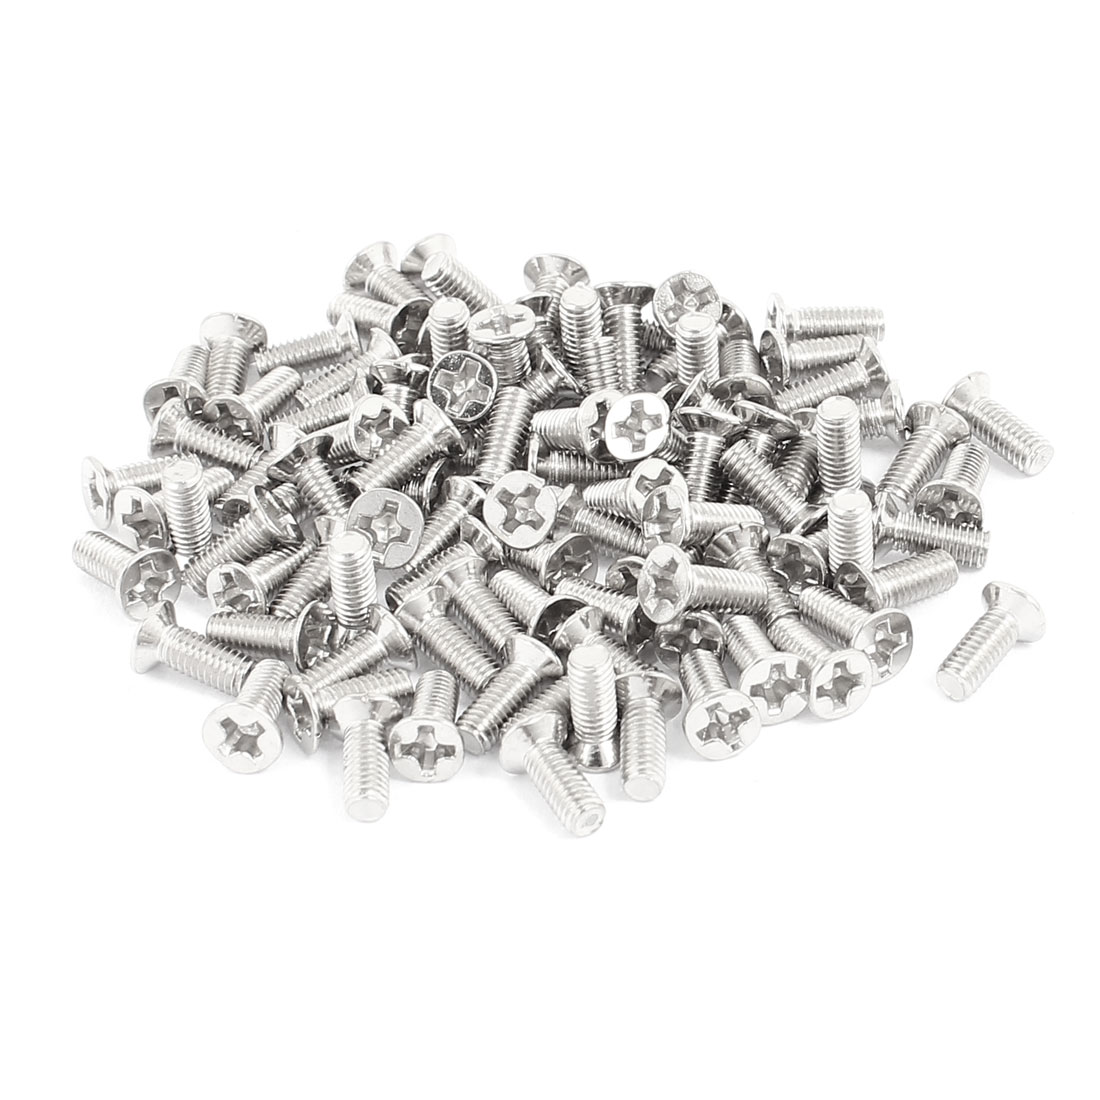 100 Pcs M3x8mm Stainless Steel Countersunk Flat Head Phillips Machine Screws Bolts